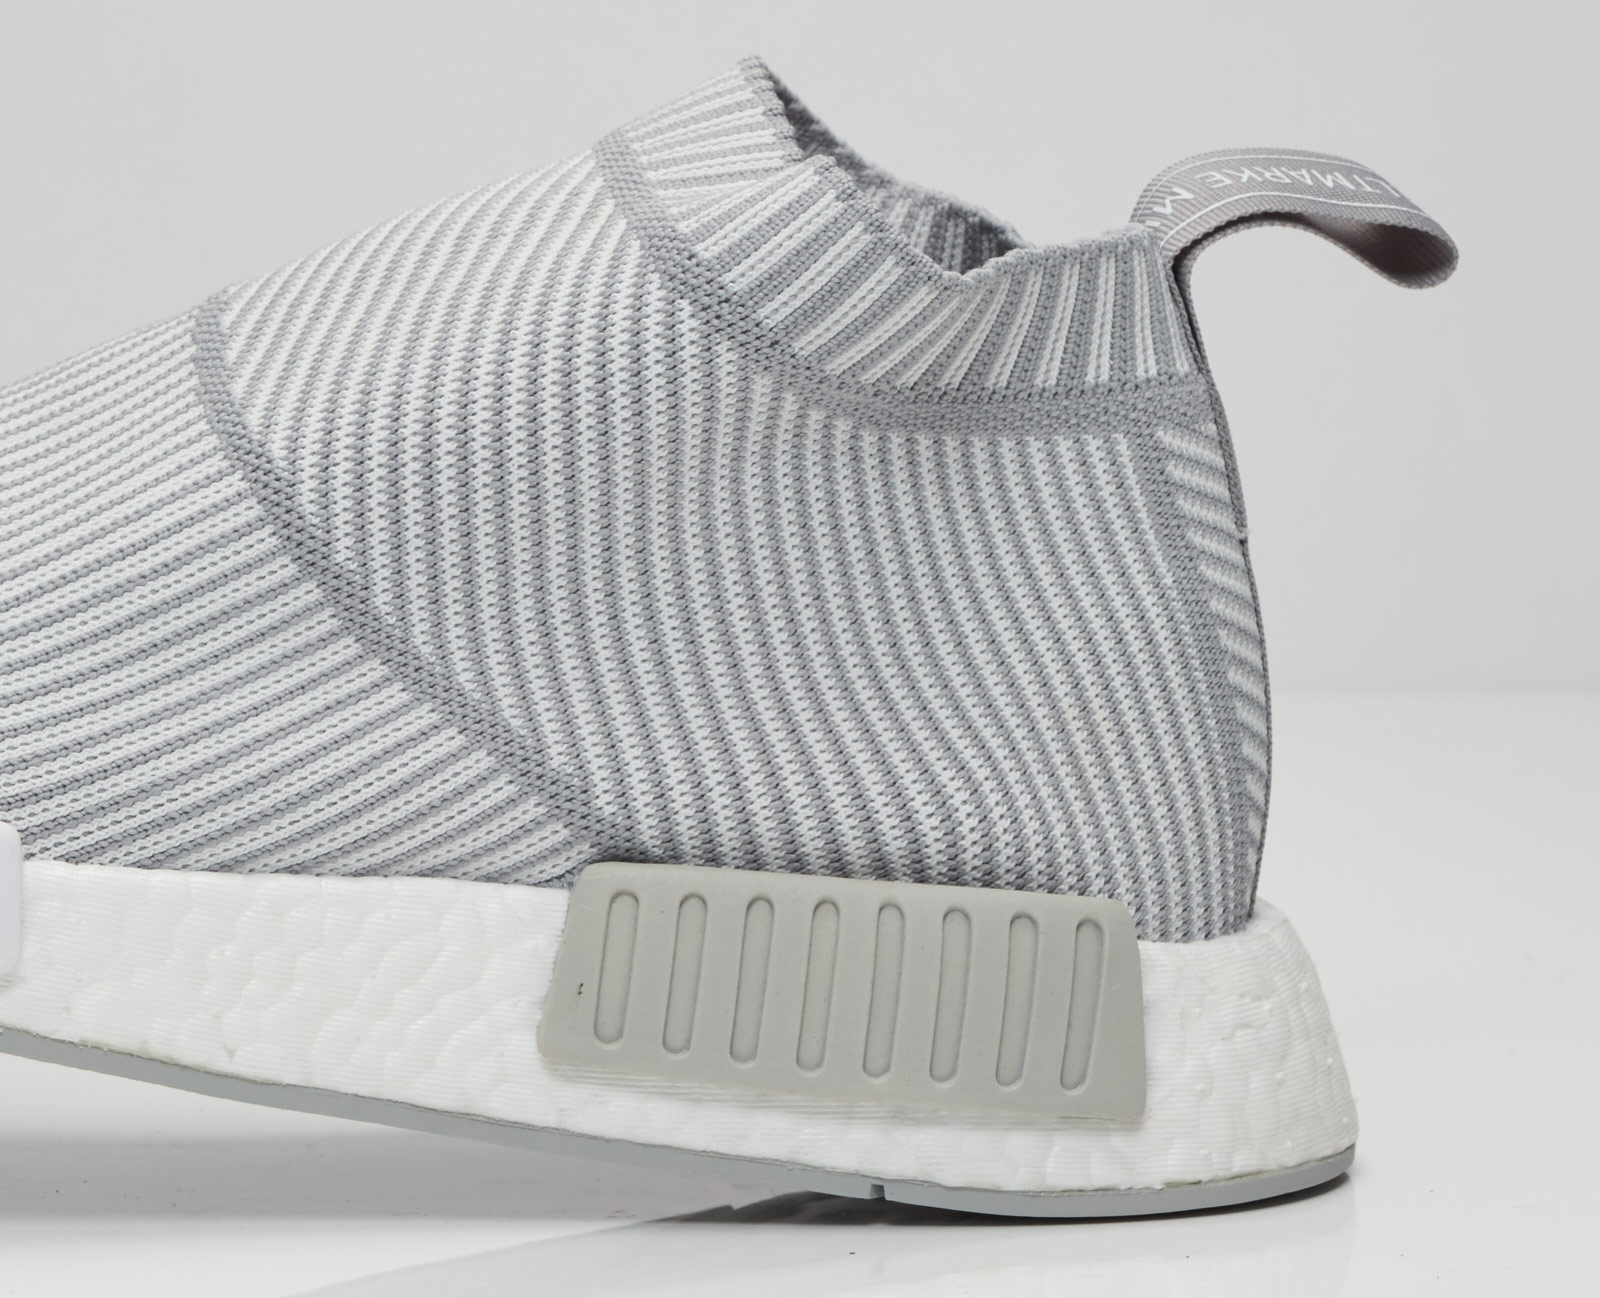 buy online 70dd0 34c12 Adidas NMD City Sock White Grey | Sole Collector